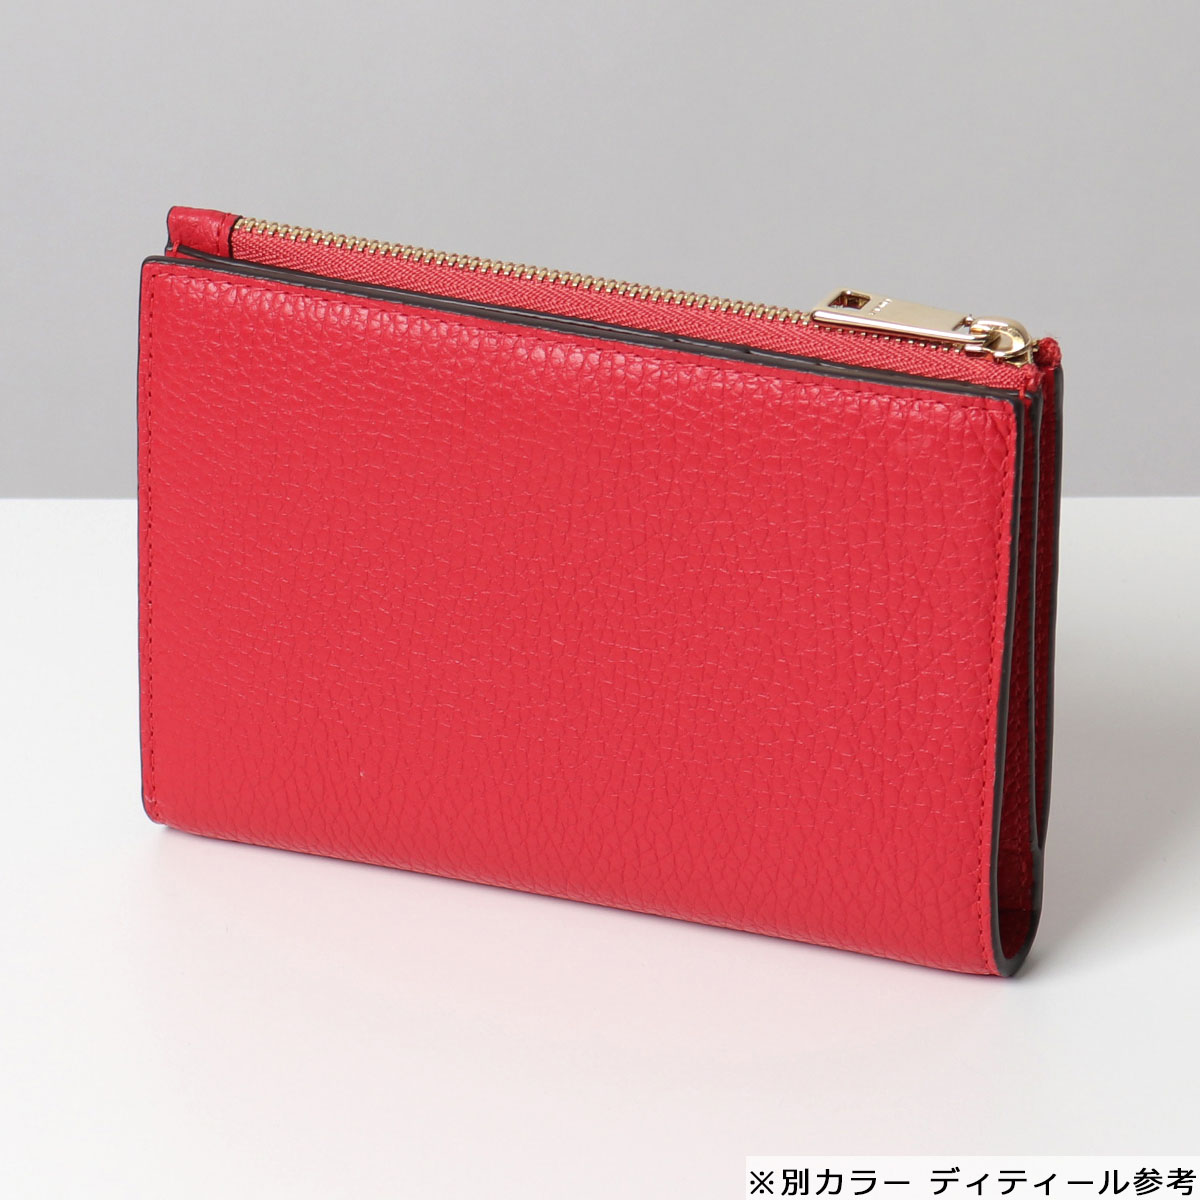 Traditional Leather Passport Holder Red